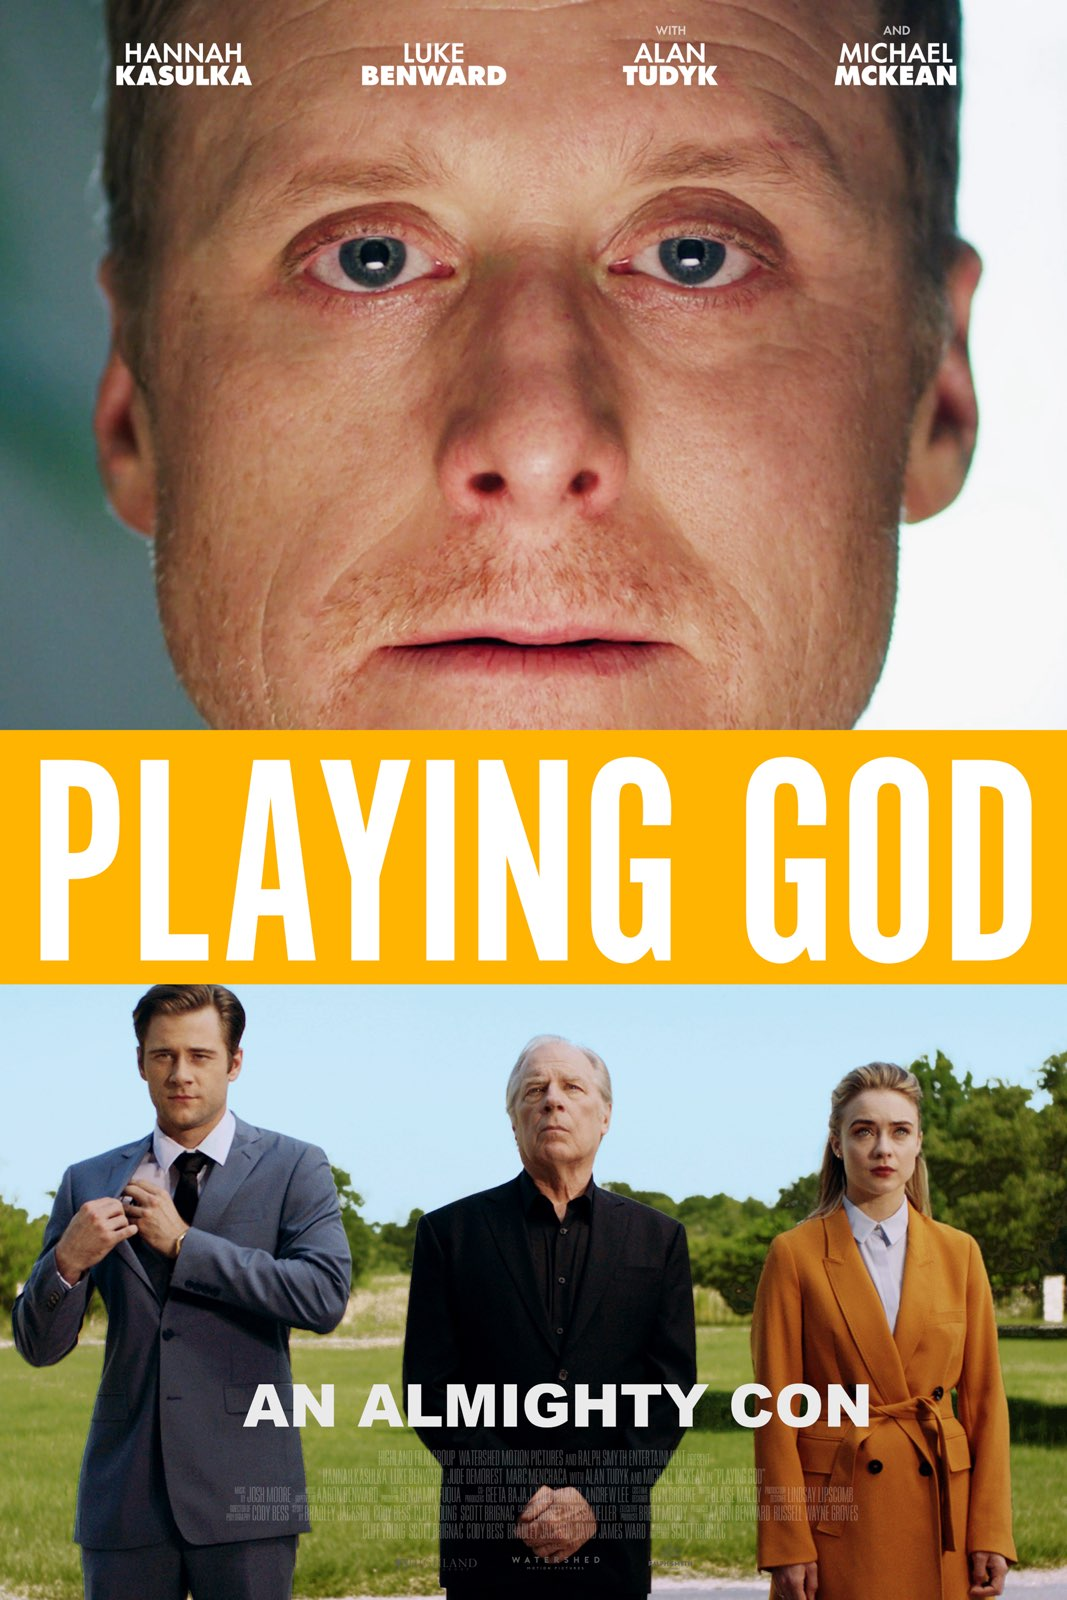 Download Playing God (2021) Bengali Dubbed (Voice Over) WEBRip 720p [Full Movie] 1XBET FREE on 1XCinema.com & KatMovieHD.sk